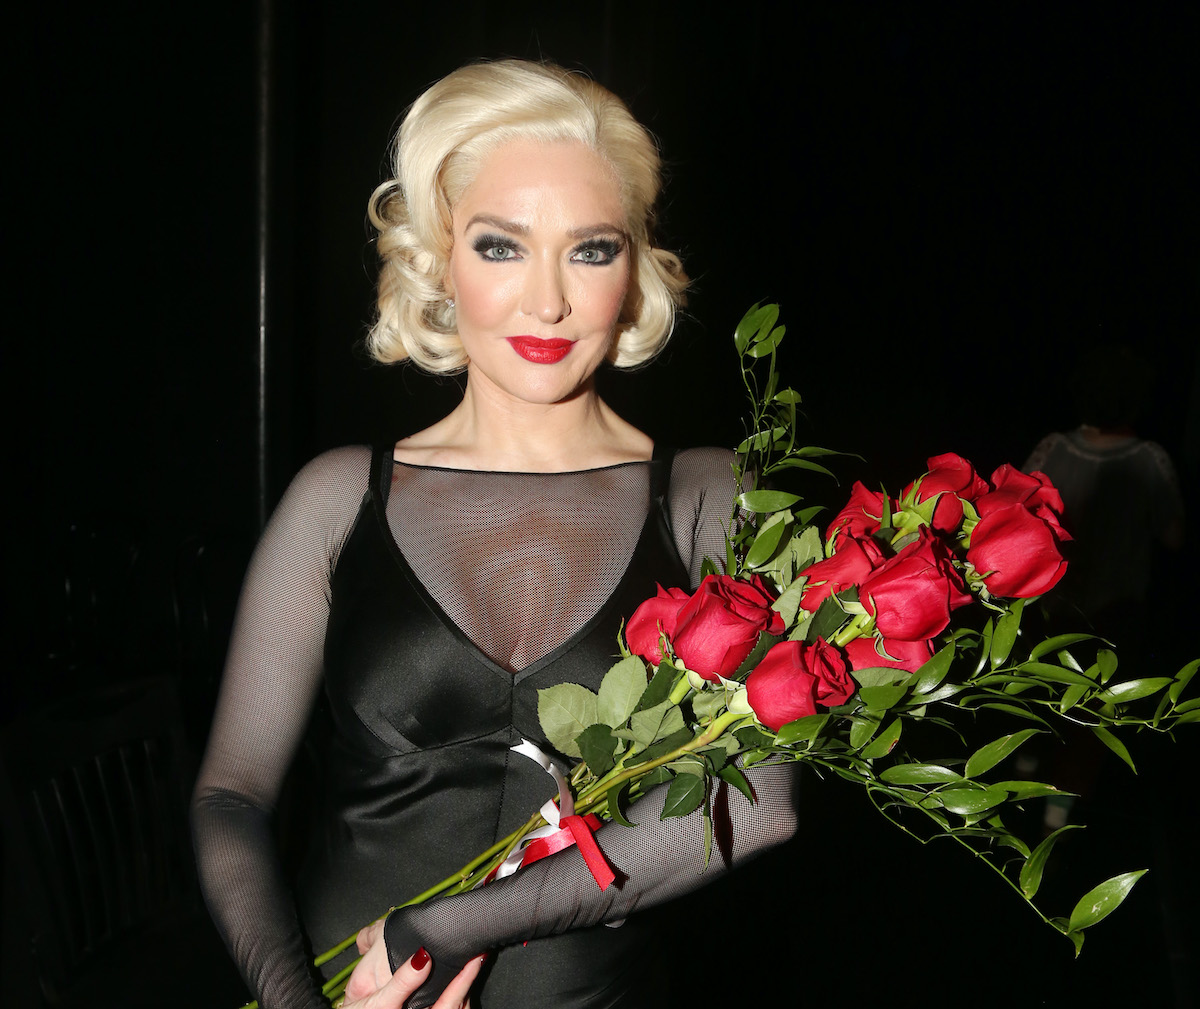 """Erika Jayne as 'Roxie Hart' poses backstage after making her broadway debut in the hit musical """"Chicago"""" on Broadway"""